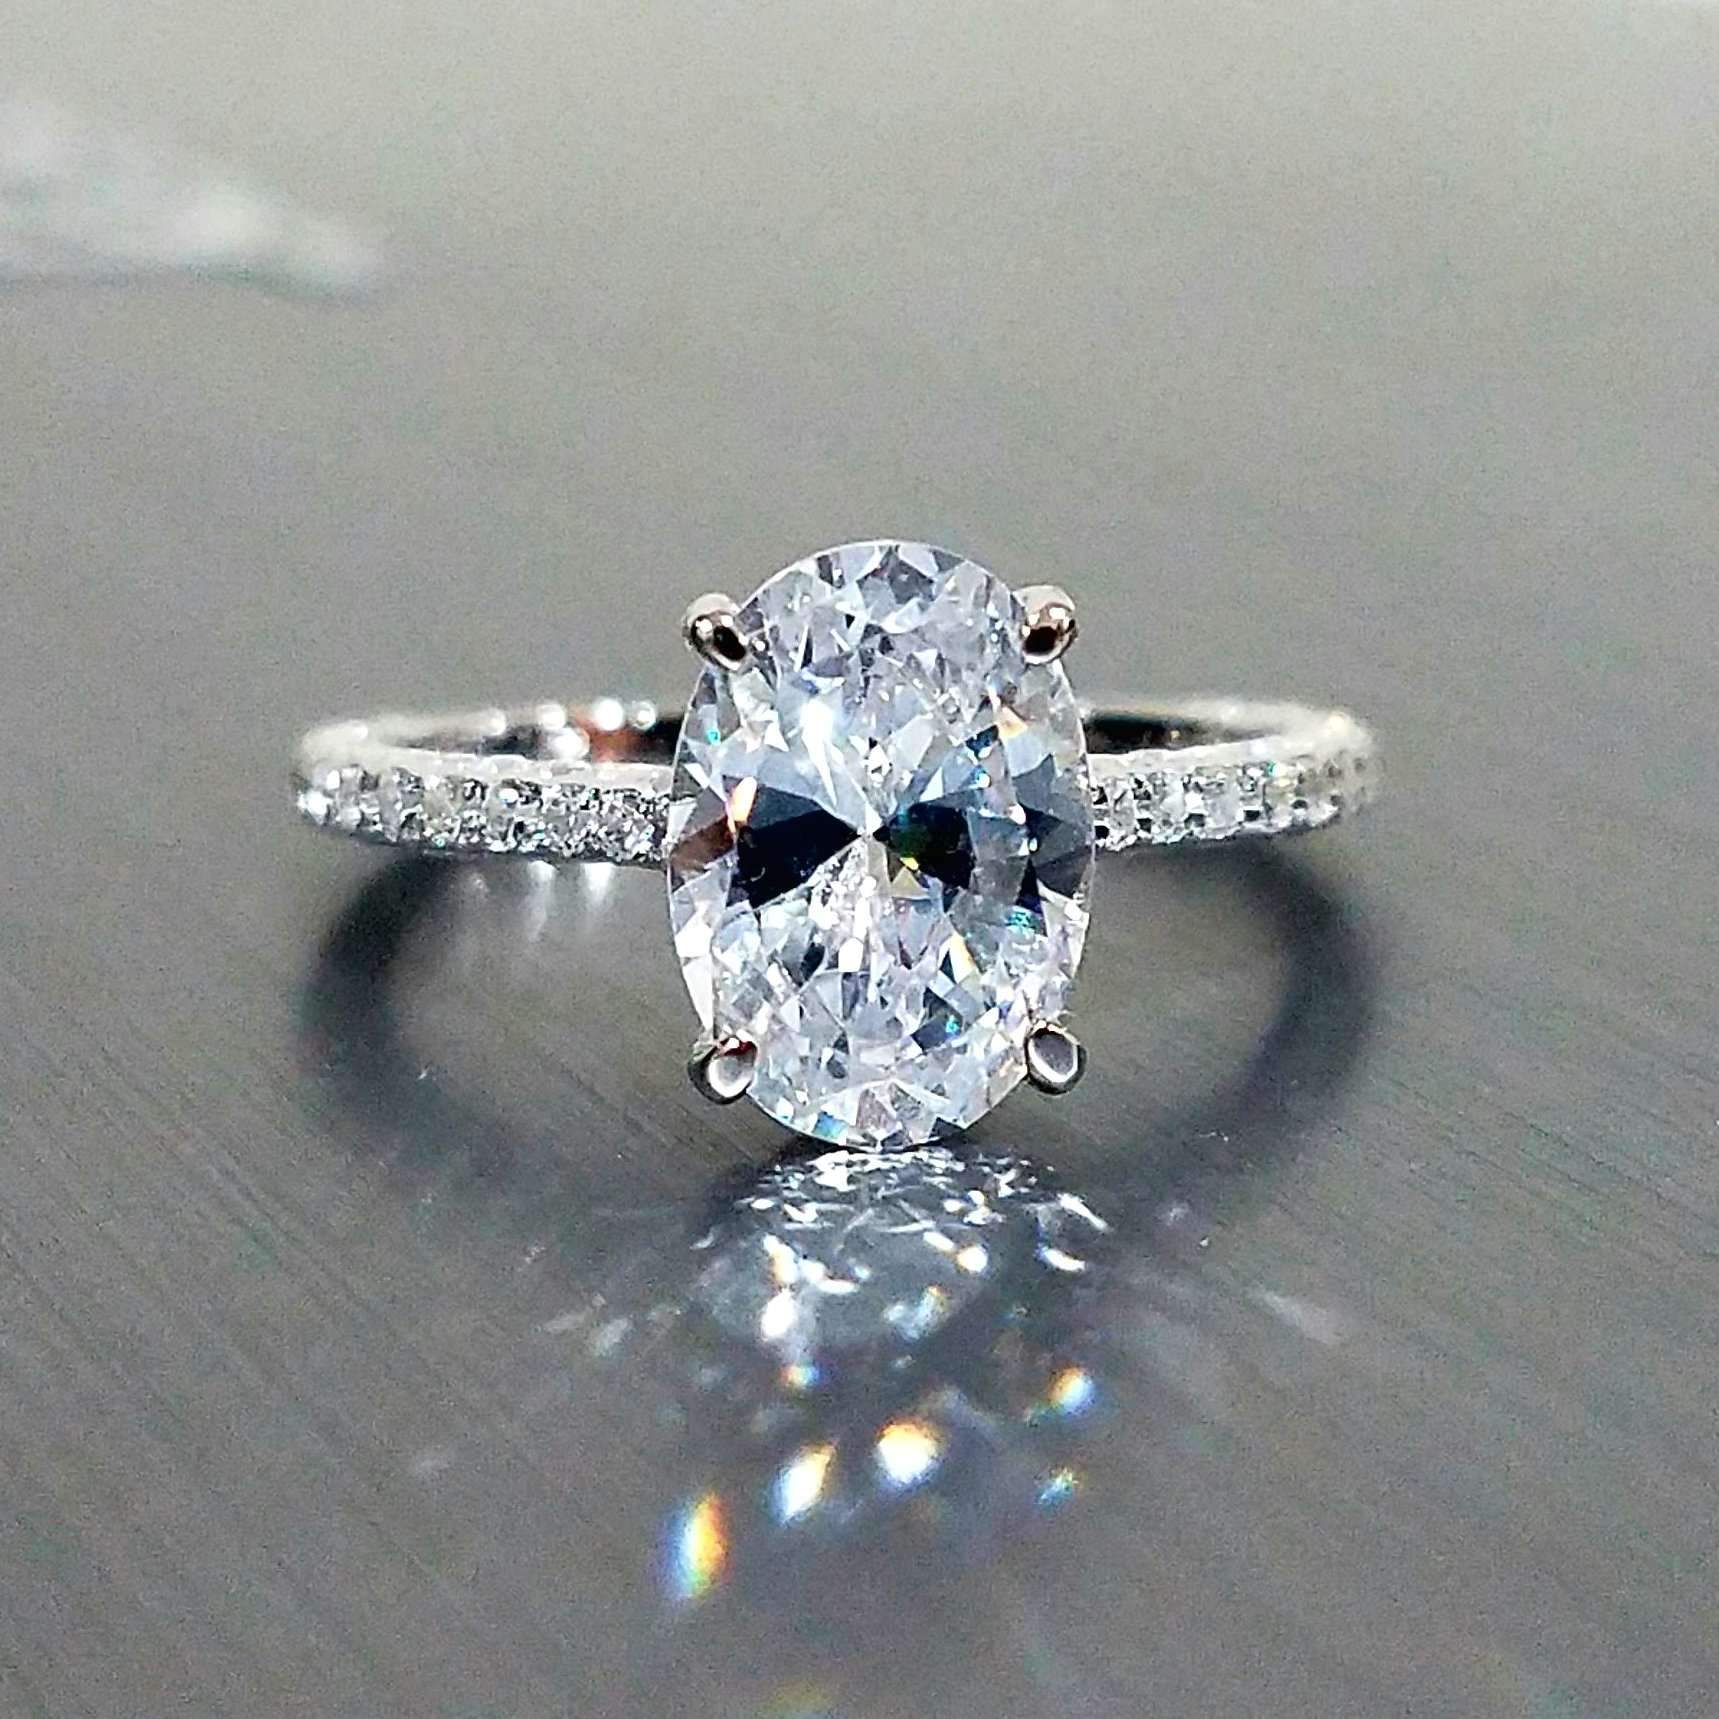 Wedding Ring On Sale.On Sale Alexandra 2ct Oval Petite French Pave Crown Iobi Simulated Diamond Ring